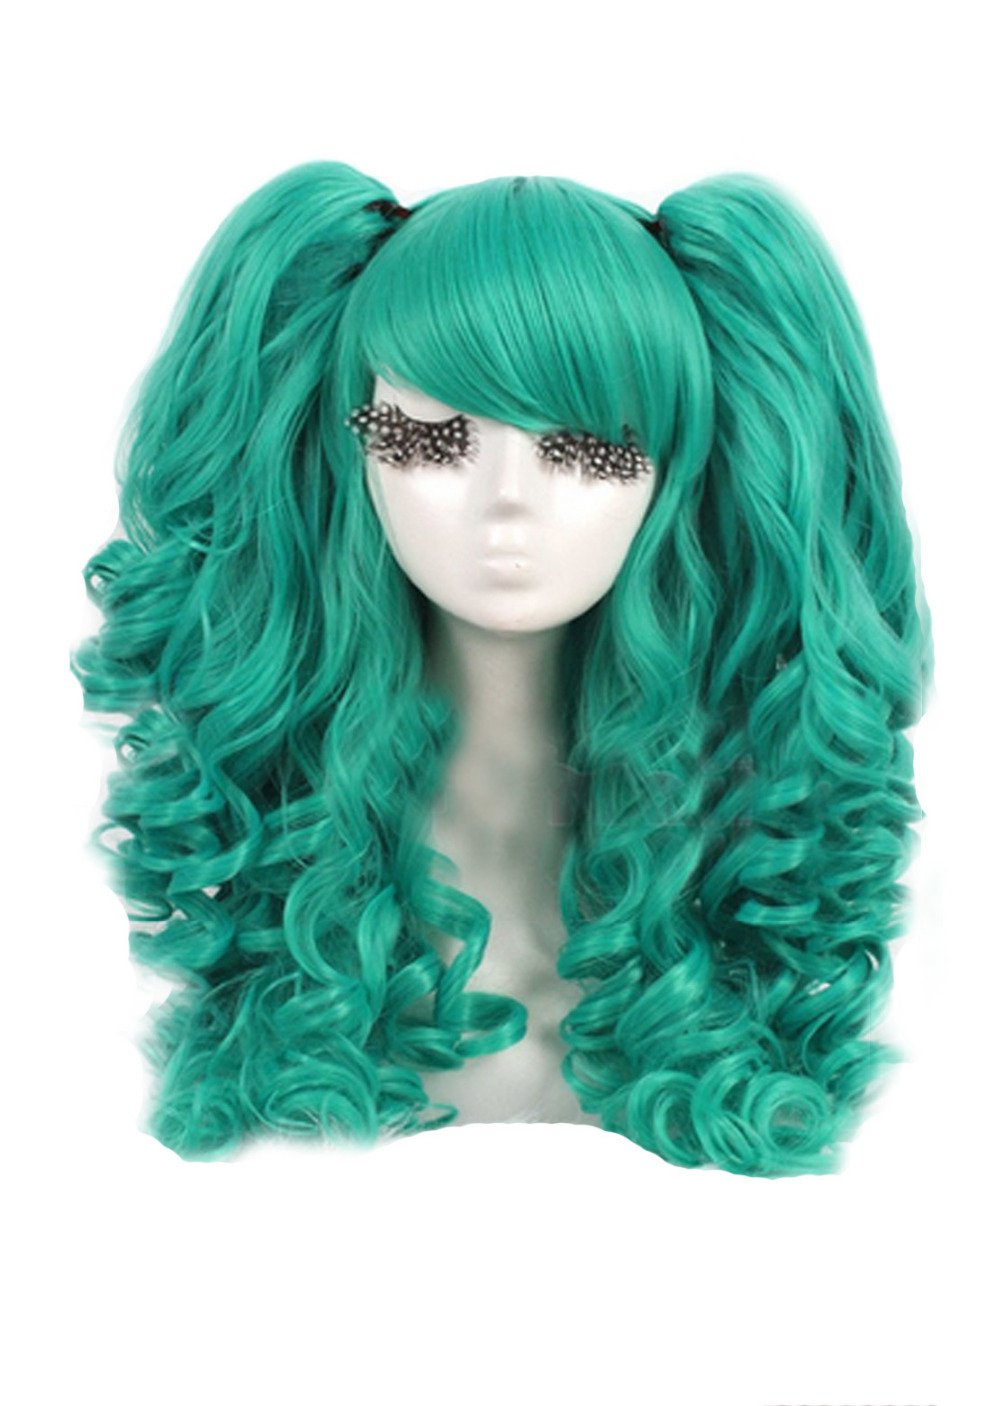 Anime 2 ponytail Green Female Adult Costume Wig Accessory Halloween Cosplay